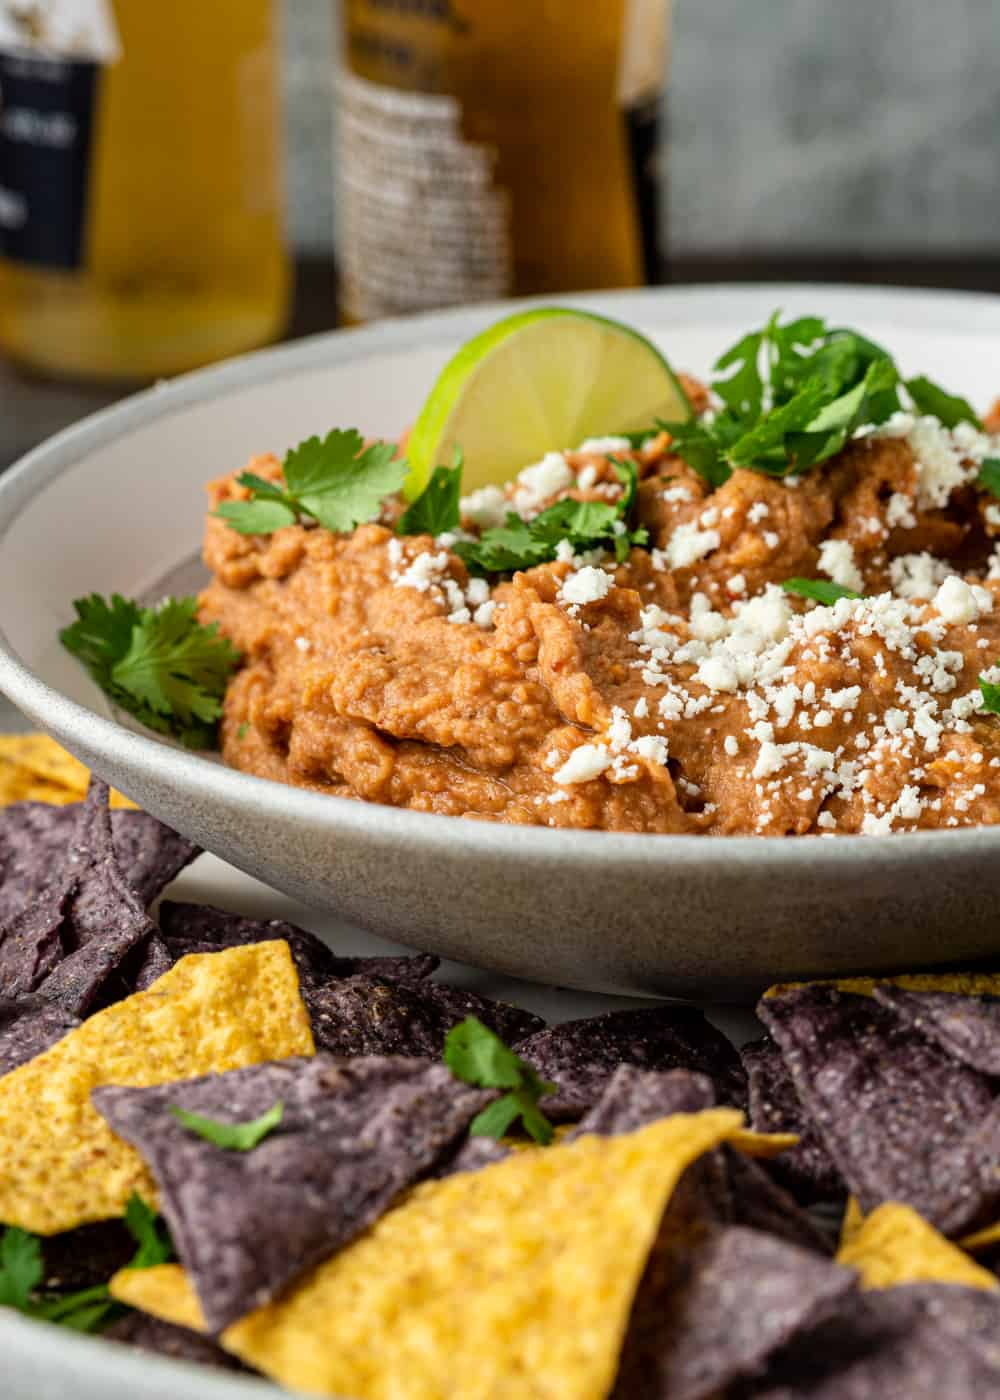 close up photo: bowl of homemade refried pinto bean dip surrounded by corn tortilla chips